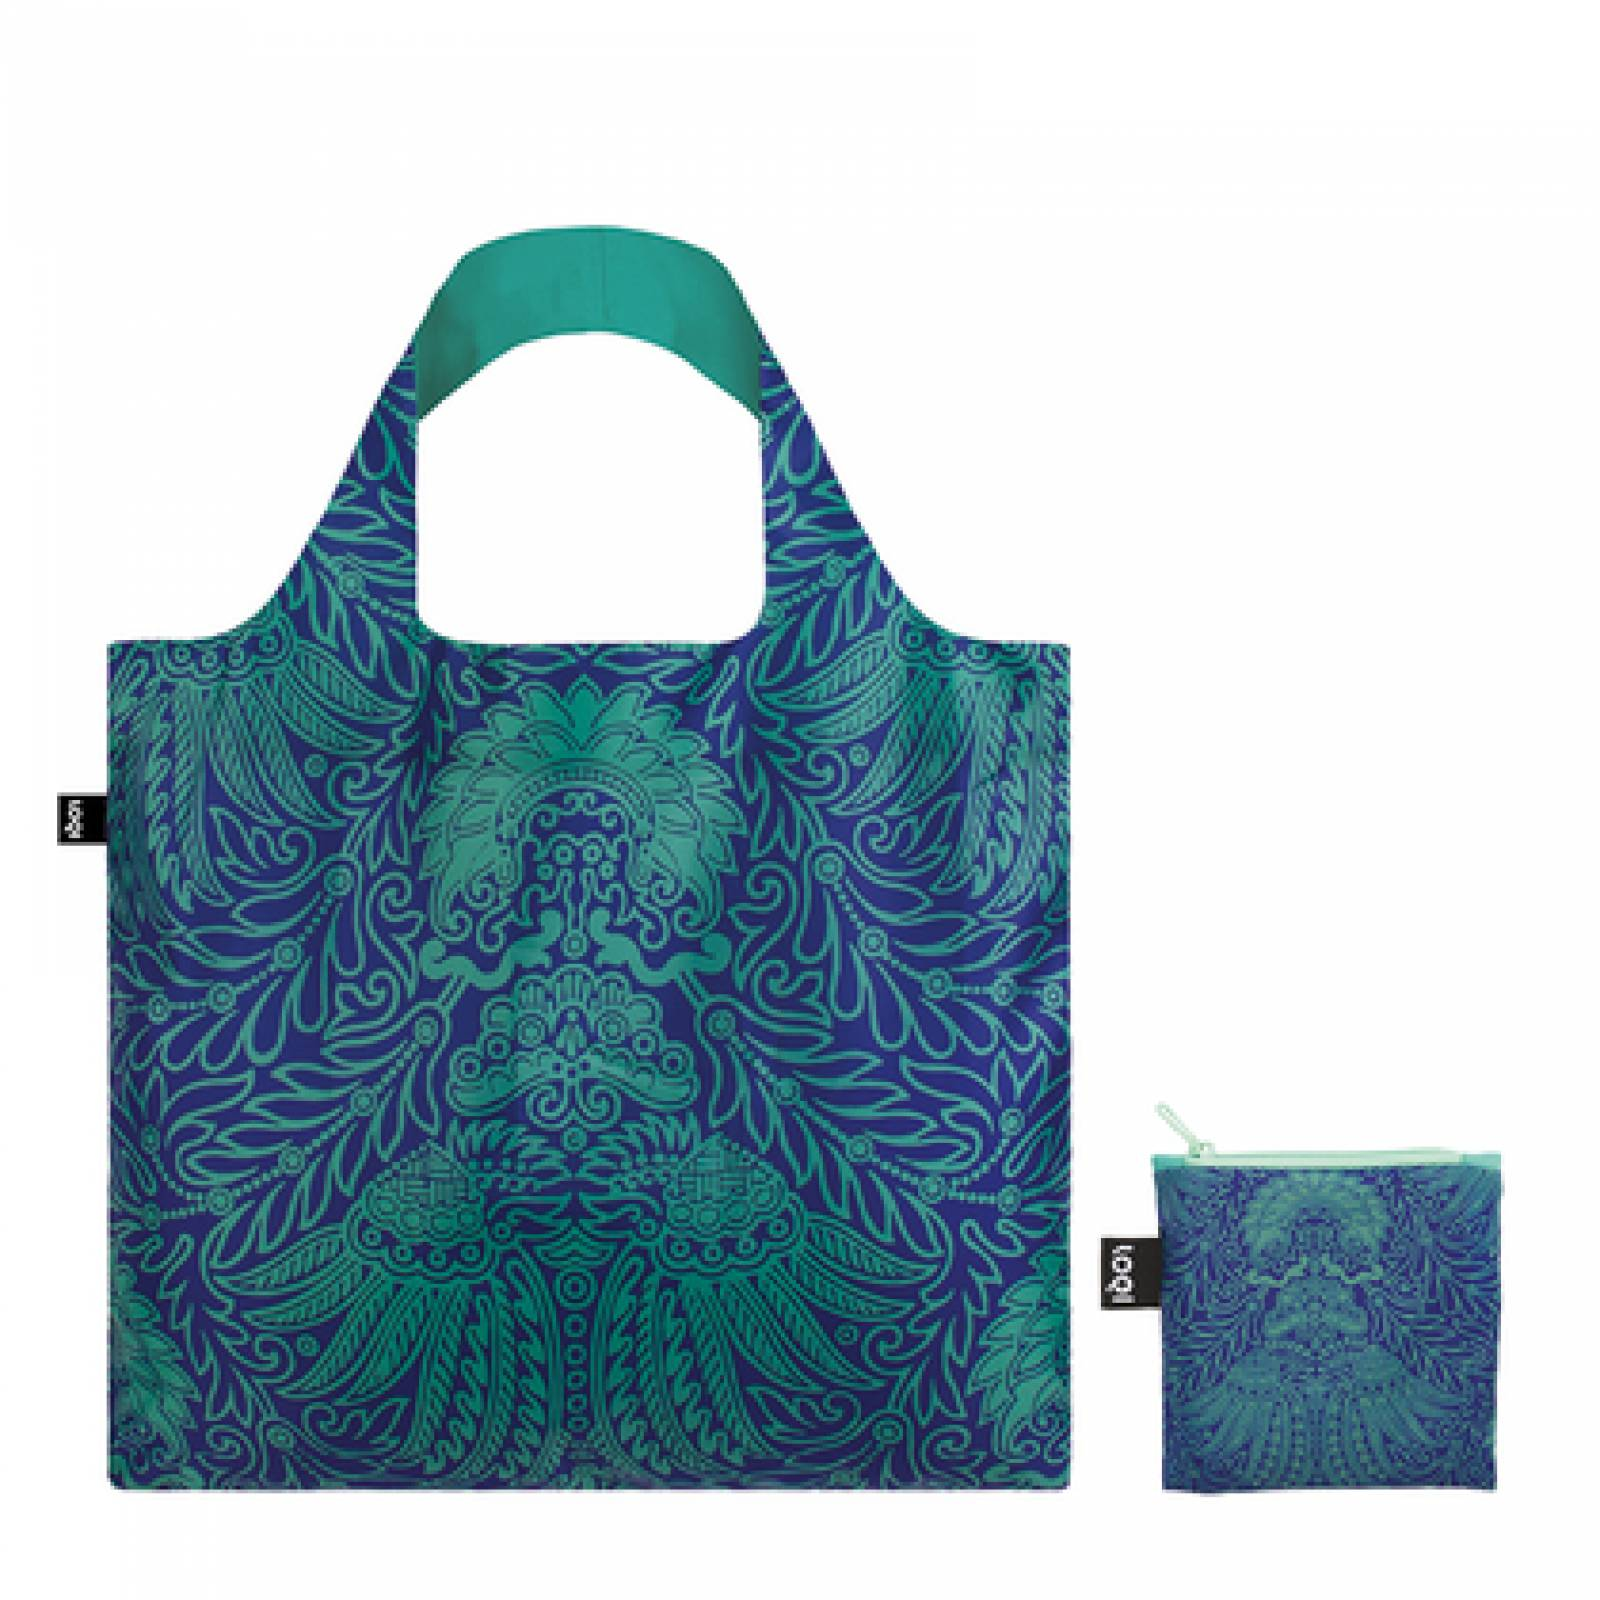 Japanese Decor - Reusable Tote Bag With Pouch thumbnails